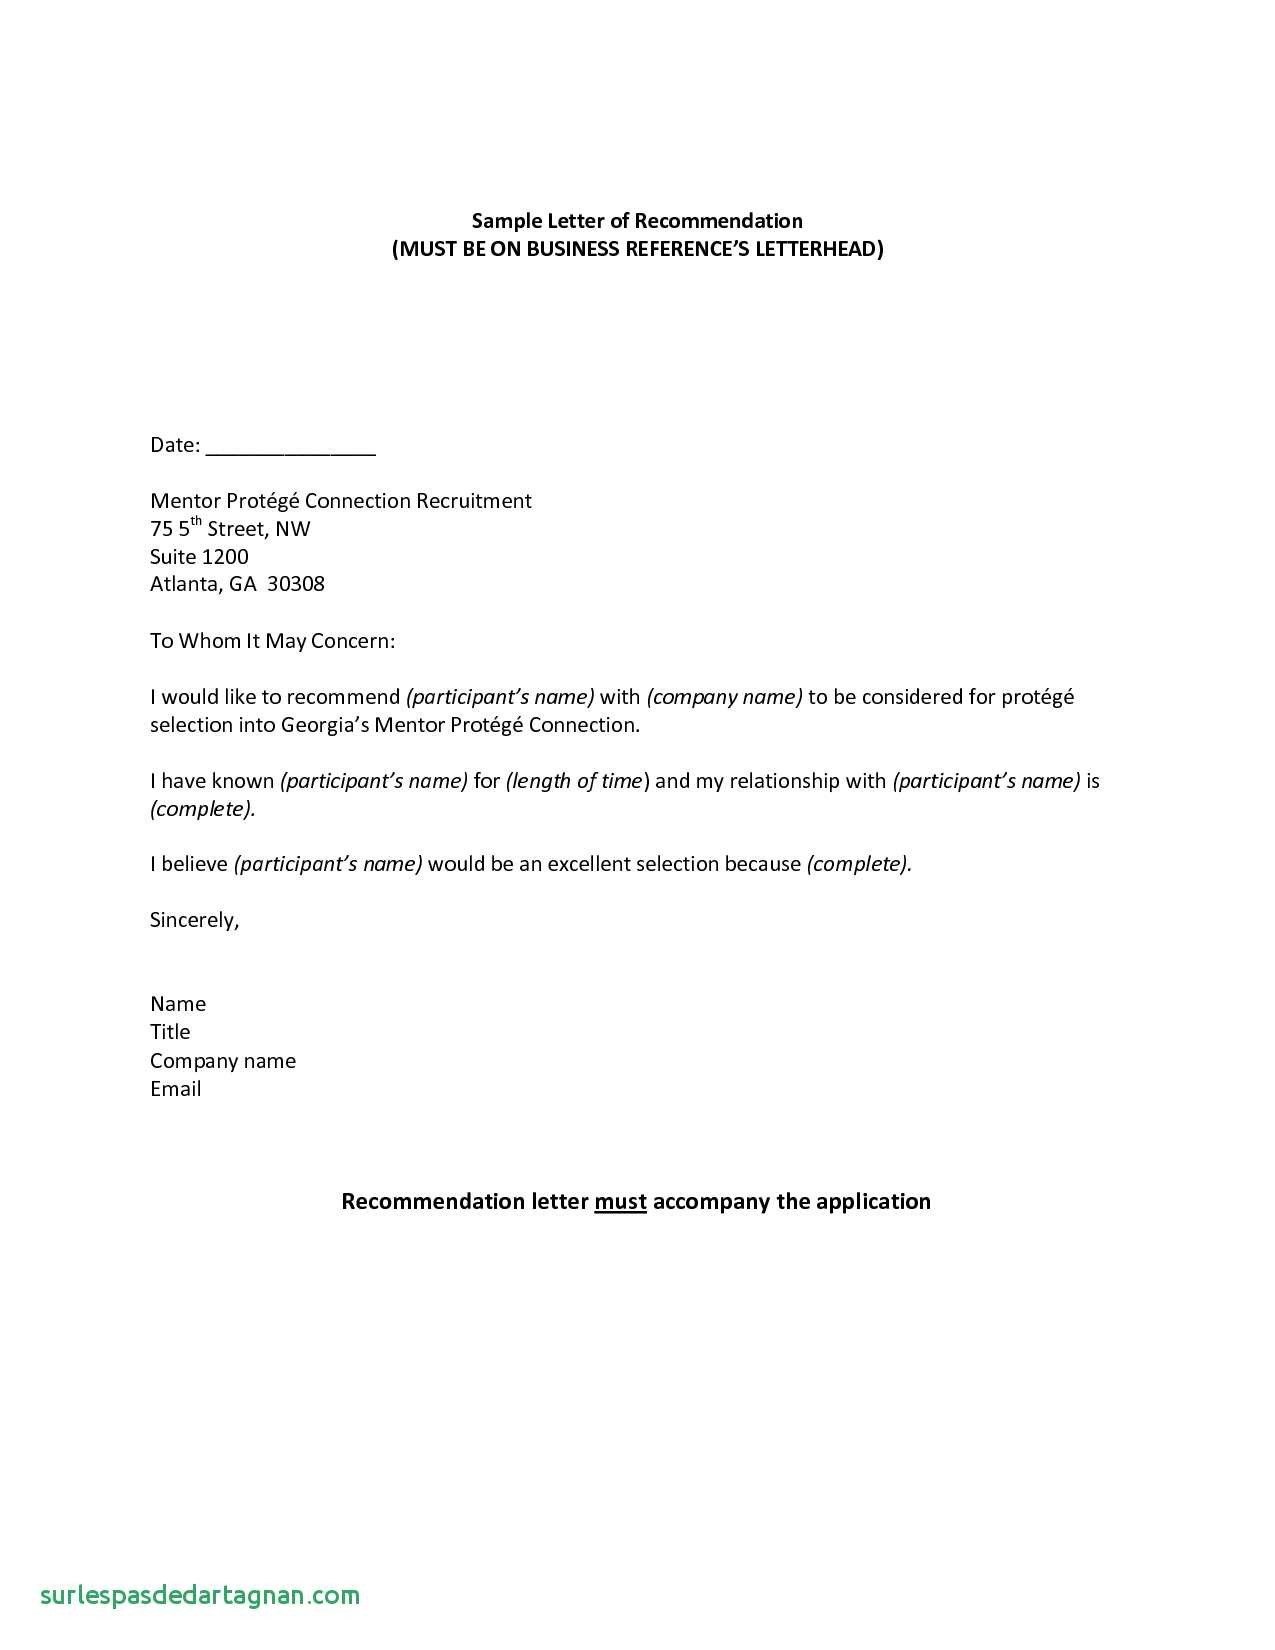 Business Reference Letter Template Word - Business Re Mendation Letter Template Save 31 New Reference Letter